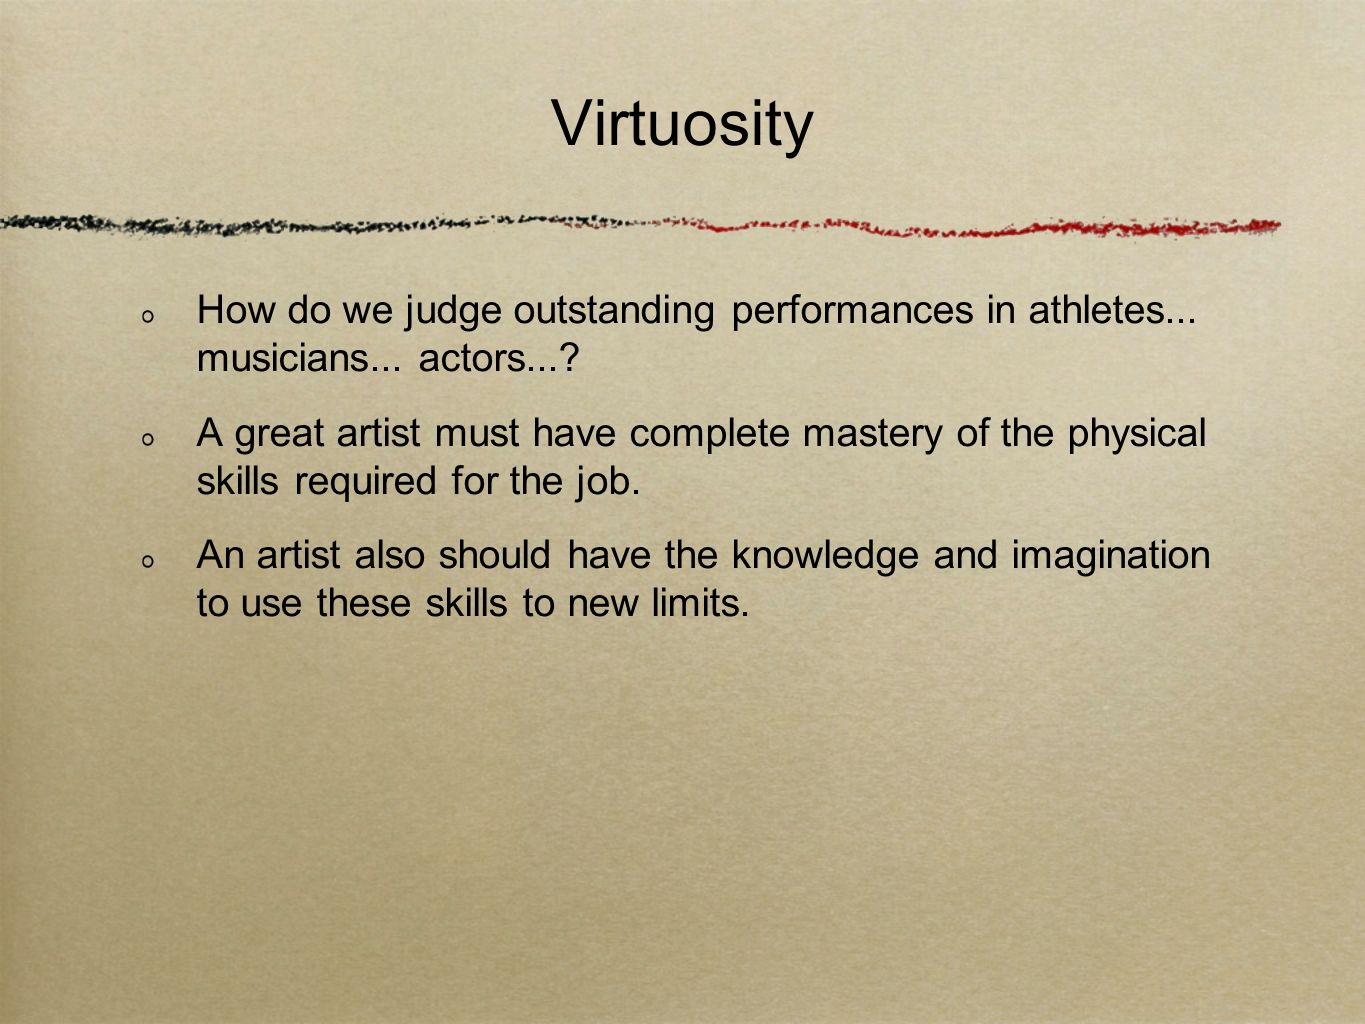 Virtuosity How do we judge outstanding performances in athletes... musicians... actors...